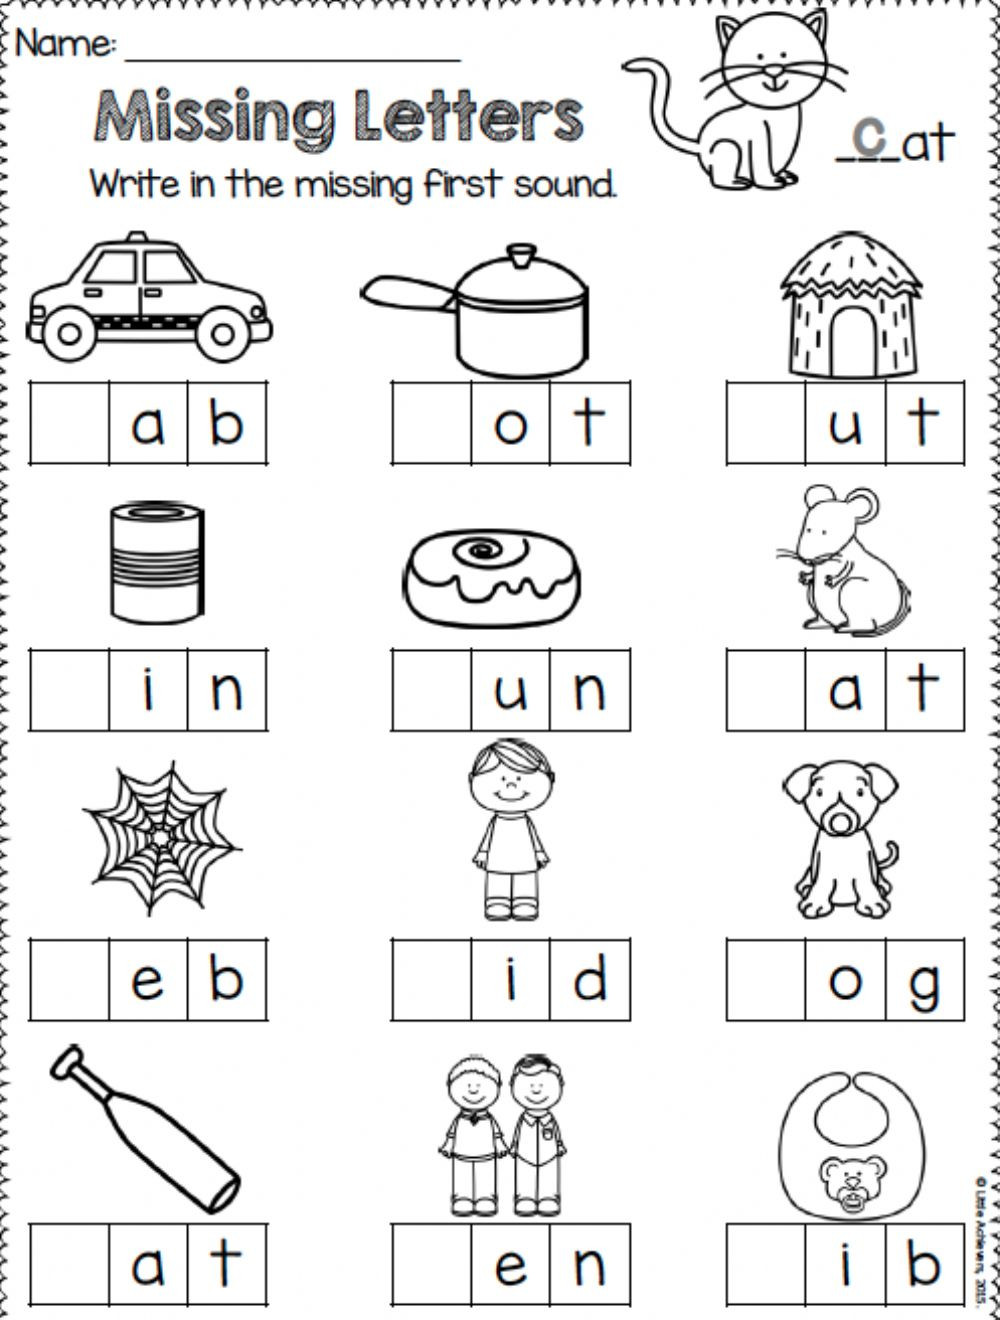 Missing Letters activity